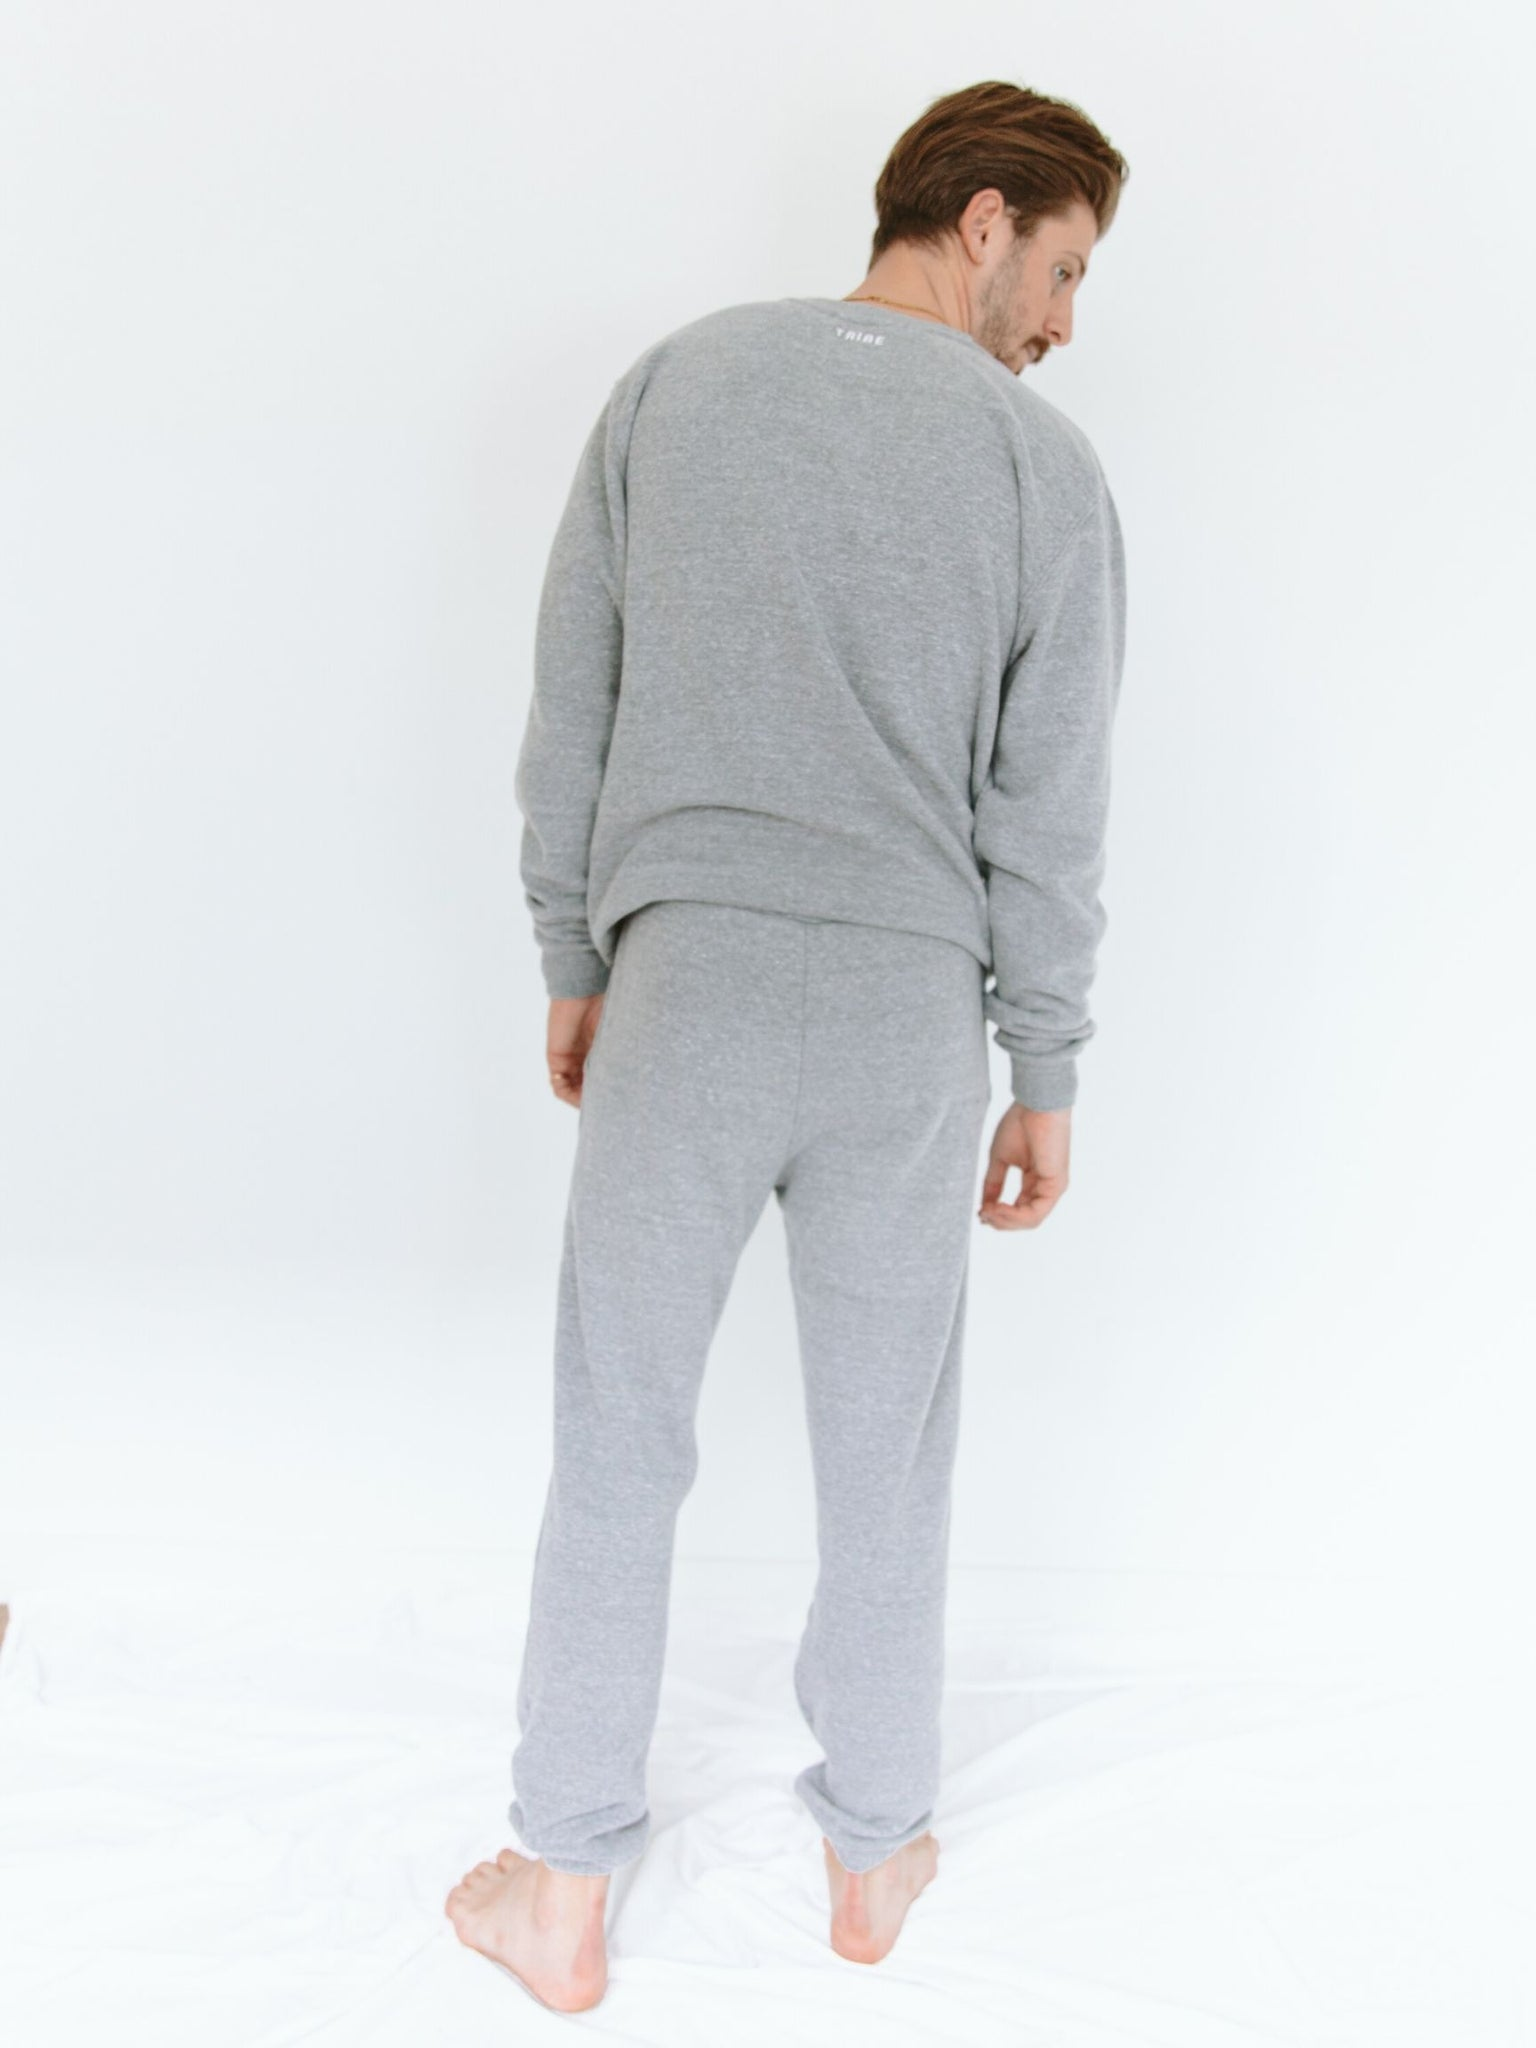 Butter Sweatpant - Men's